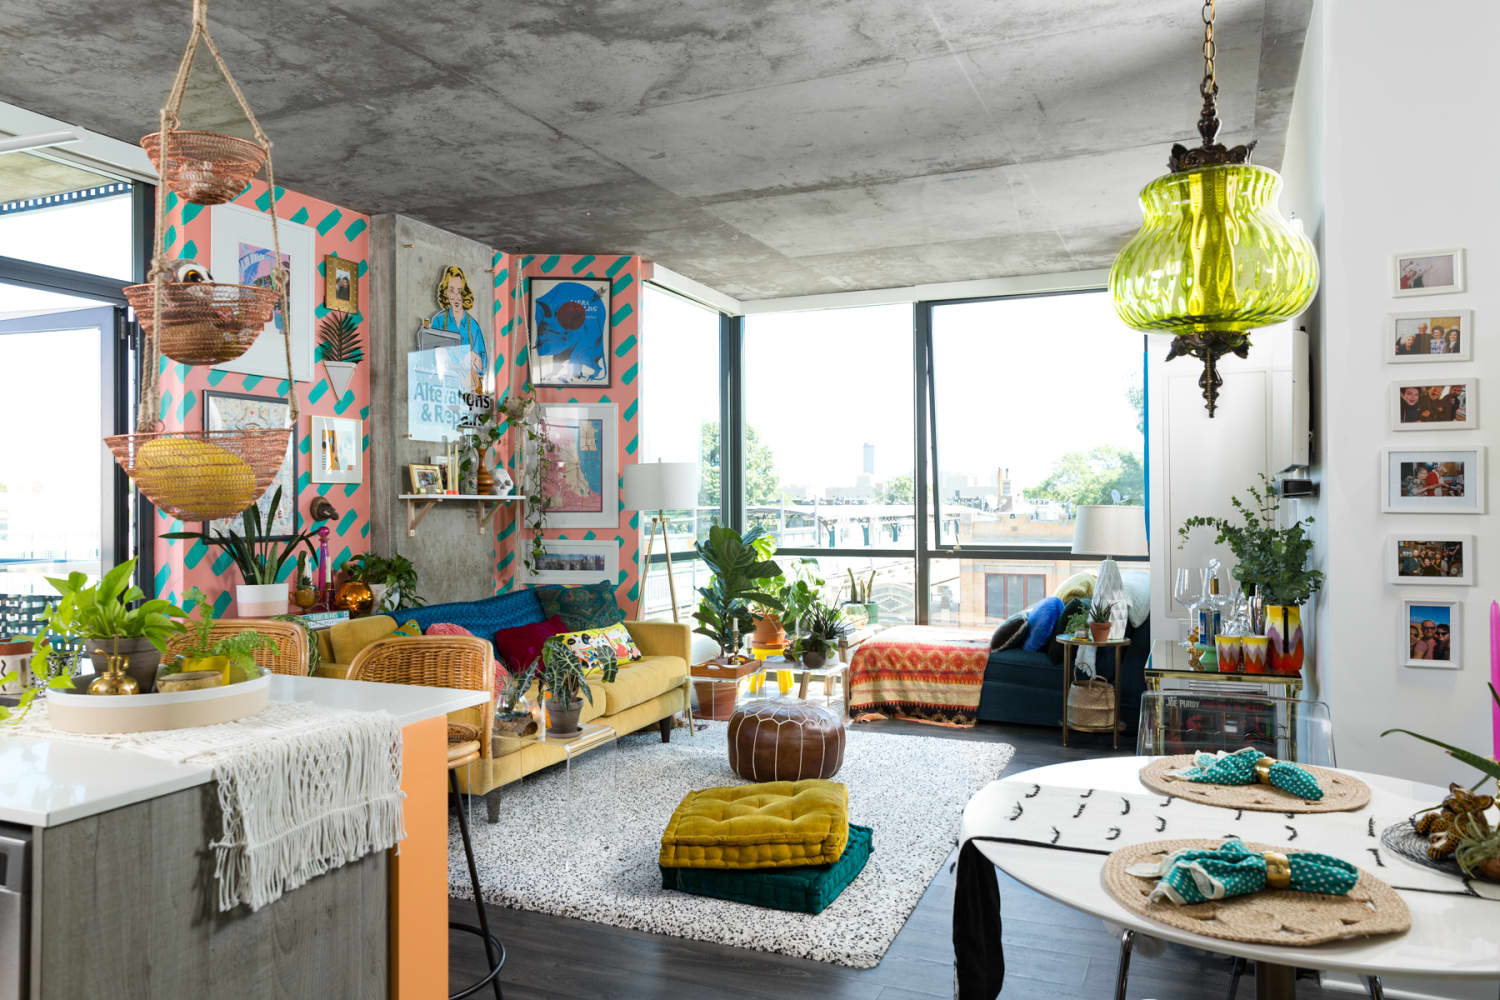 A Colorful, Maximalist Chicago Loft Has Maybe the Best DIY Patterned Paint Job